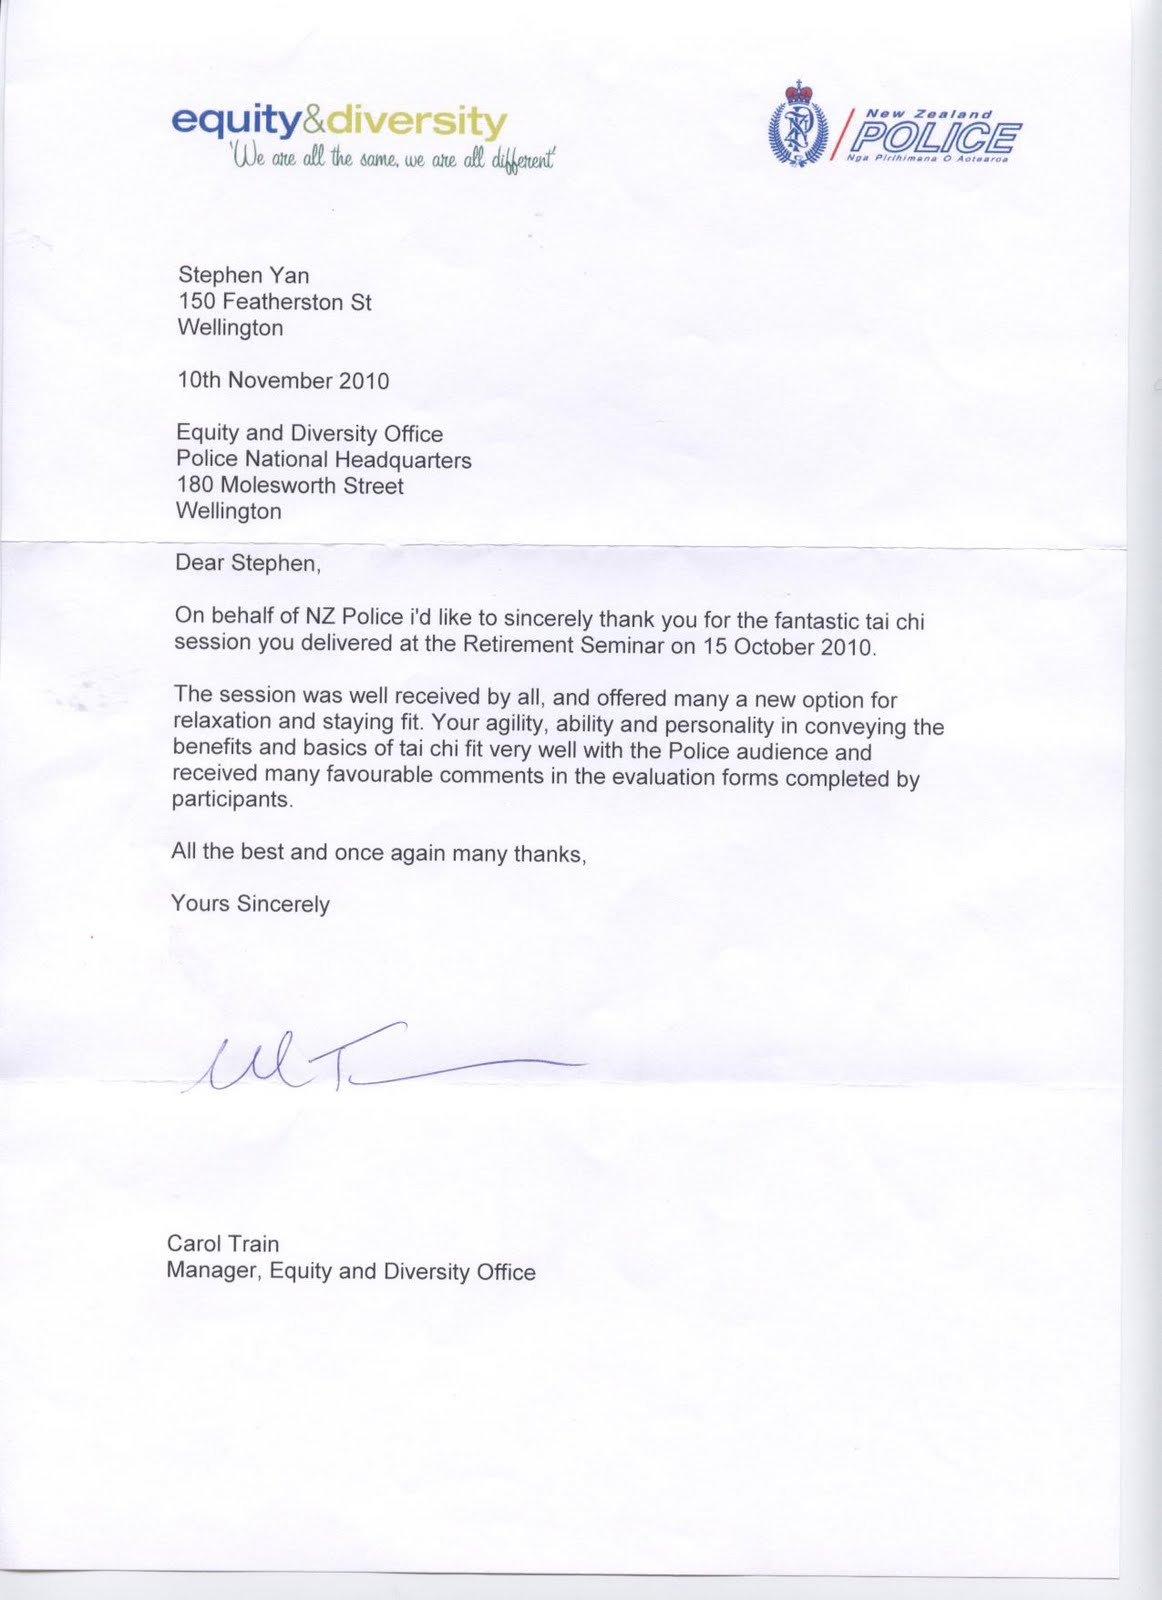 dr stephen yan martial arts blog thank you letter from nz police thank you letter from nz police